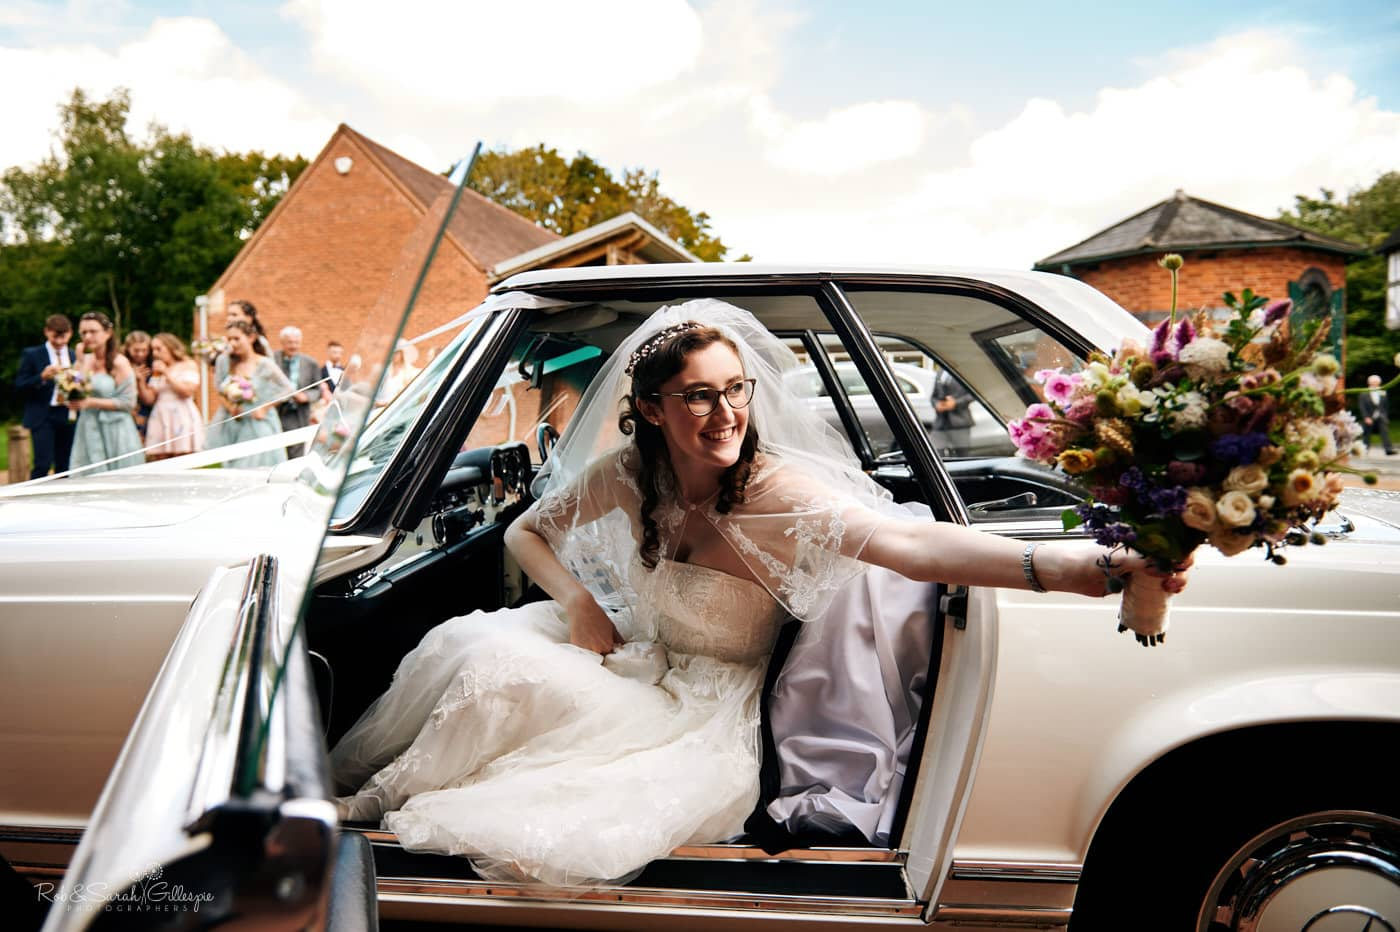 Bride arrives in car at Avoncroft Museum wedding reception